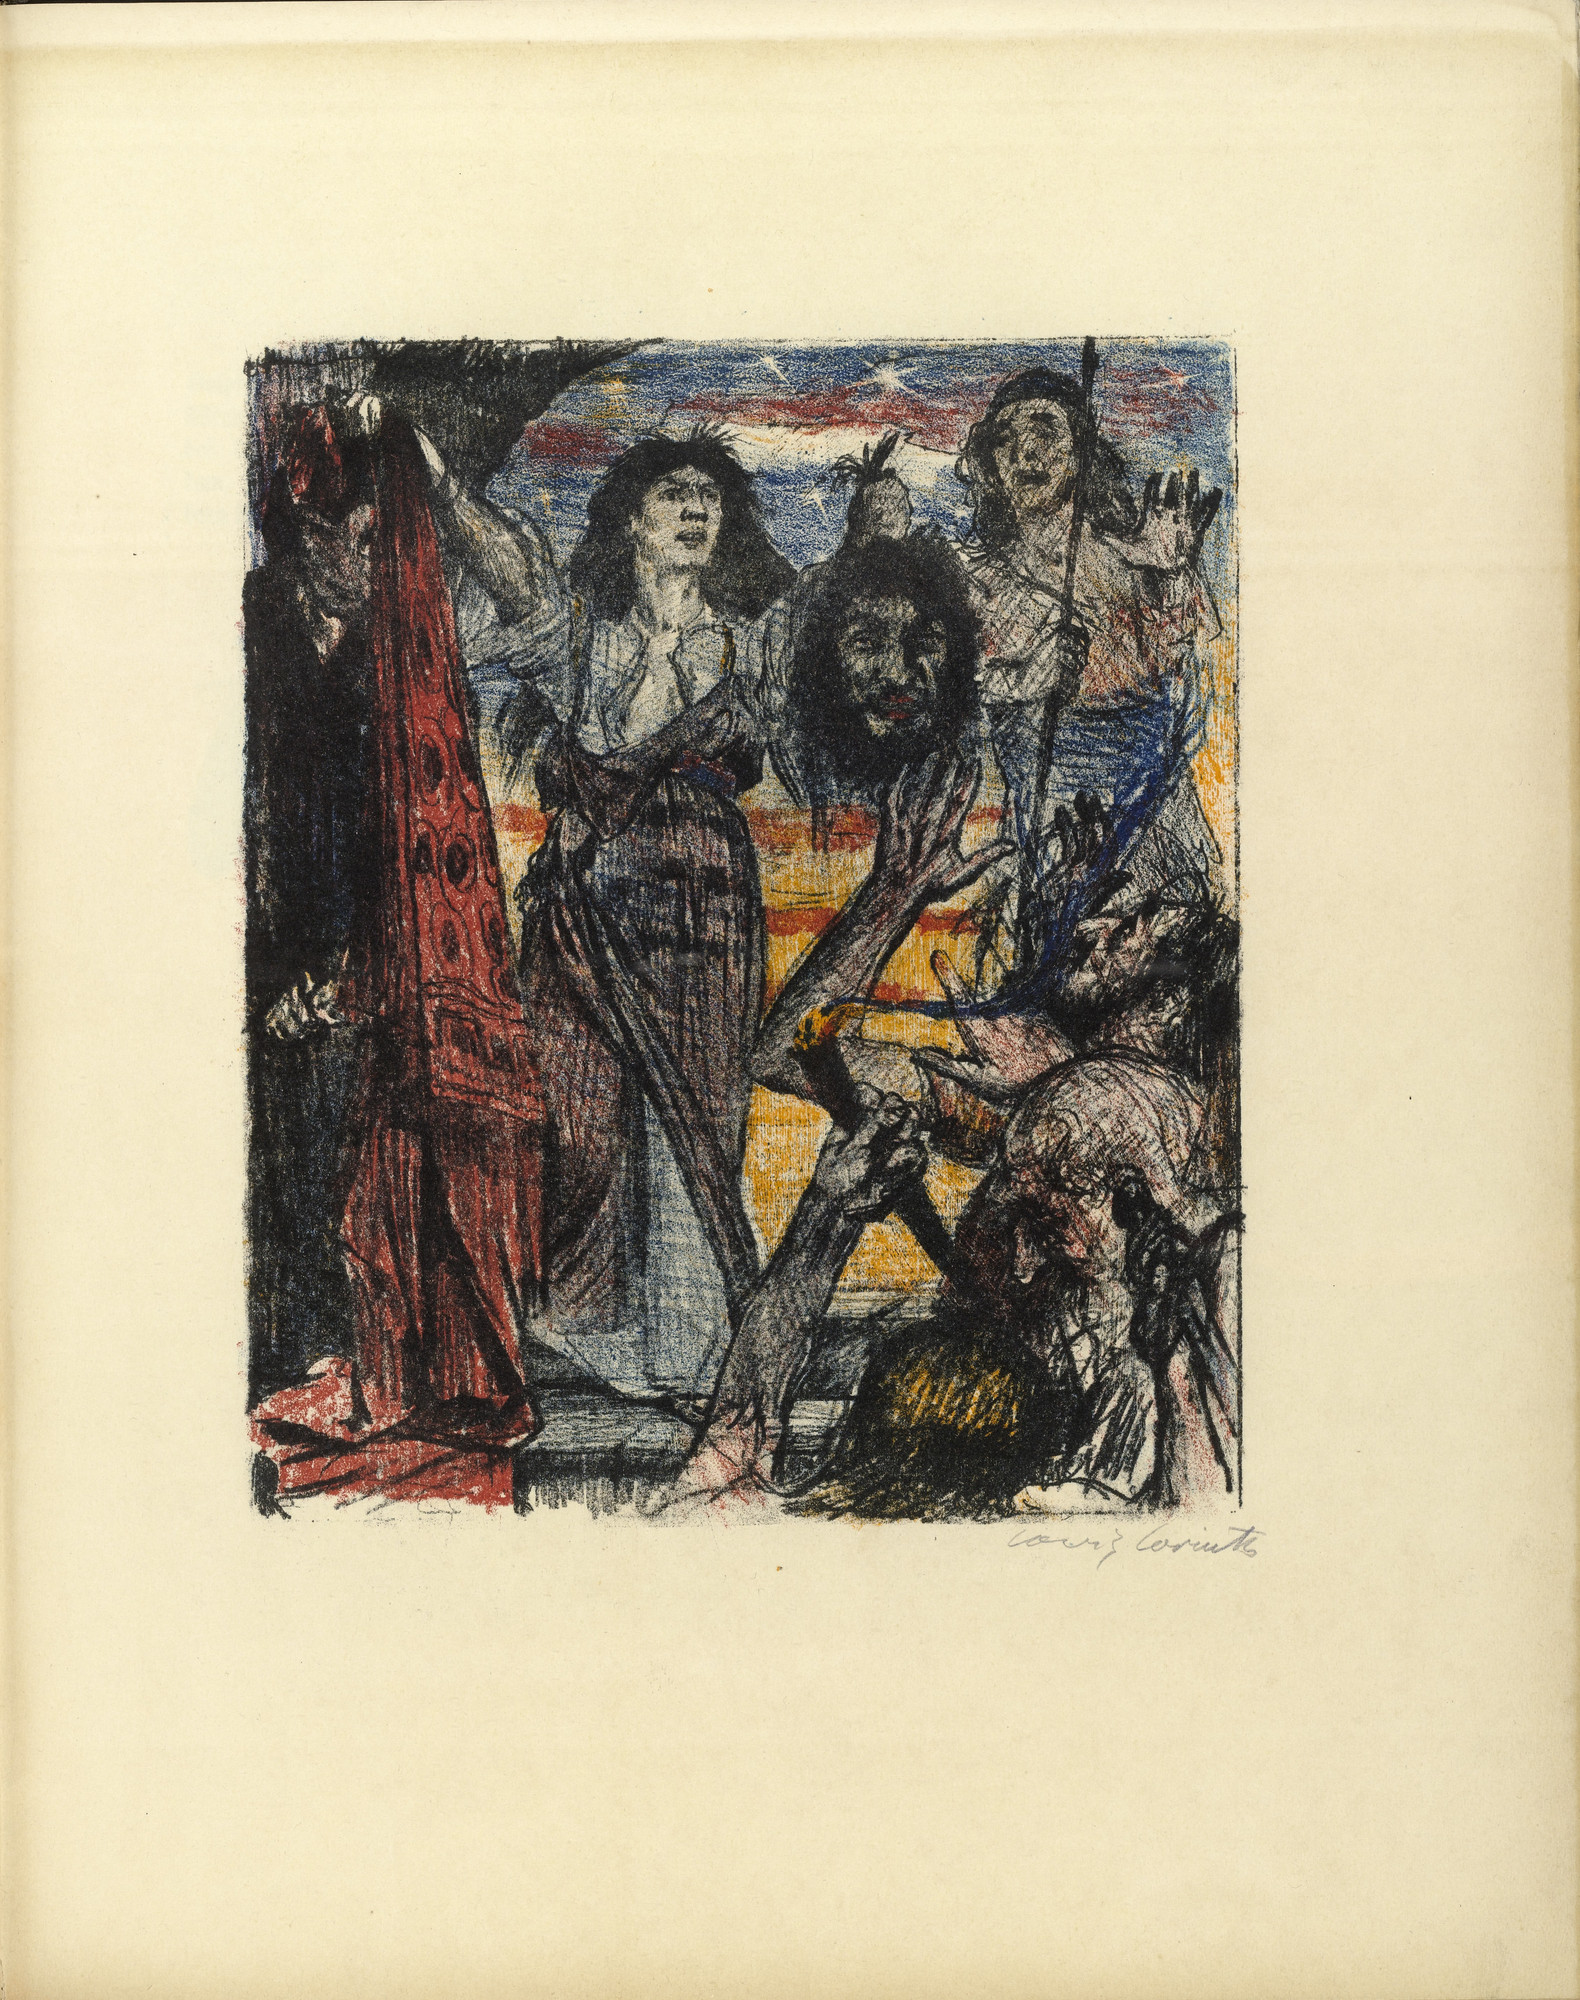 Lovis Corinth. The Return of Judith (Judiths Rückkehr) (plate, folio 27) from Das Buch Judith (The Book of Judith). 1910